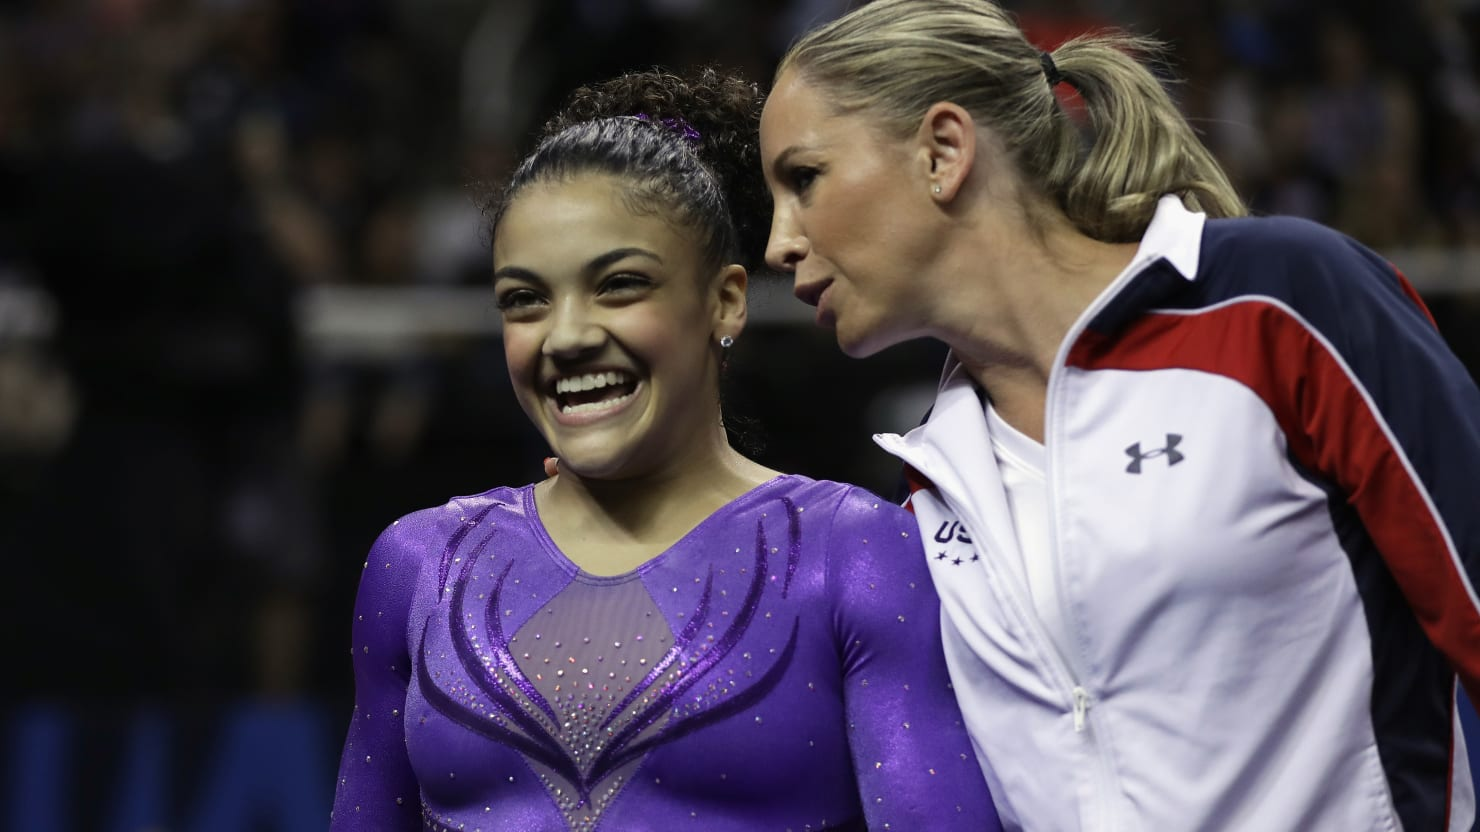 Famed Former U.S. Olympic Gymnastics Coach Suspended for Abusing Young Athletes